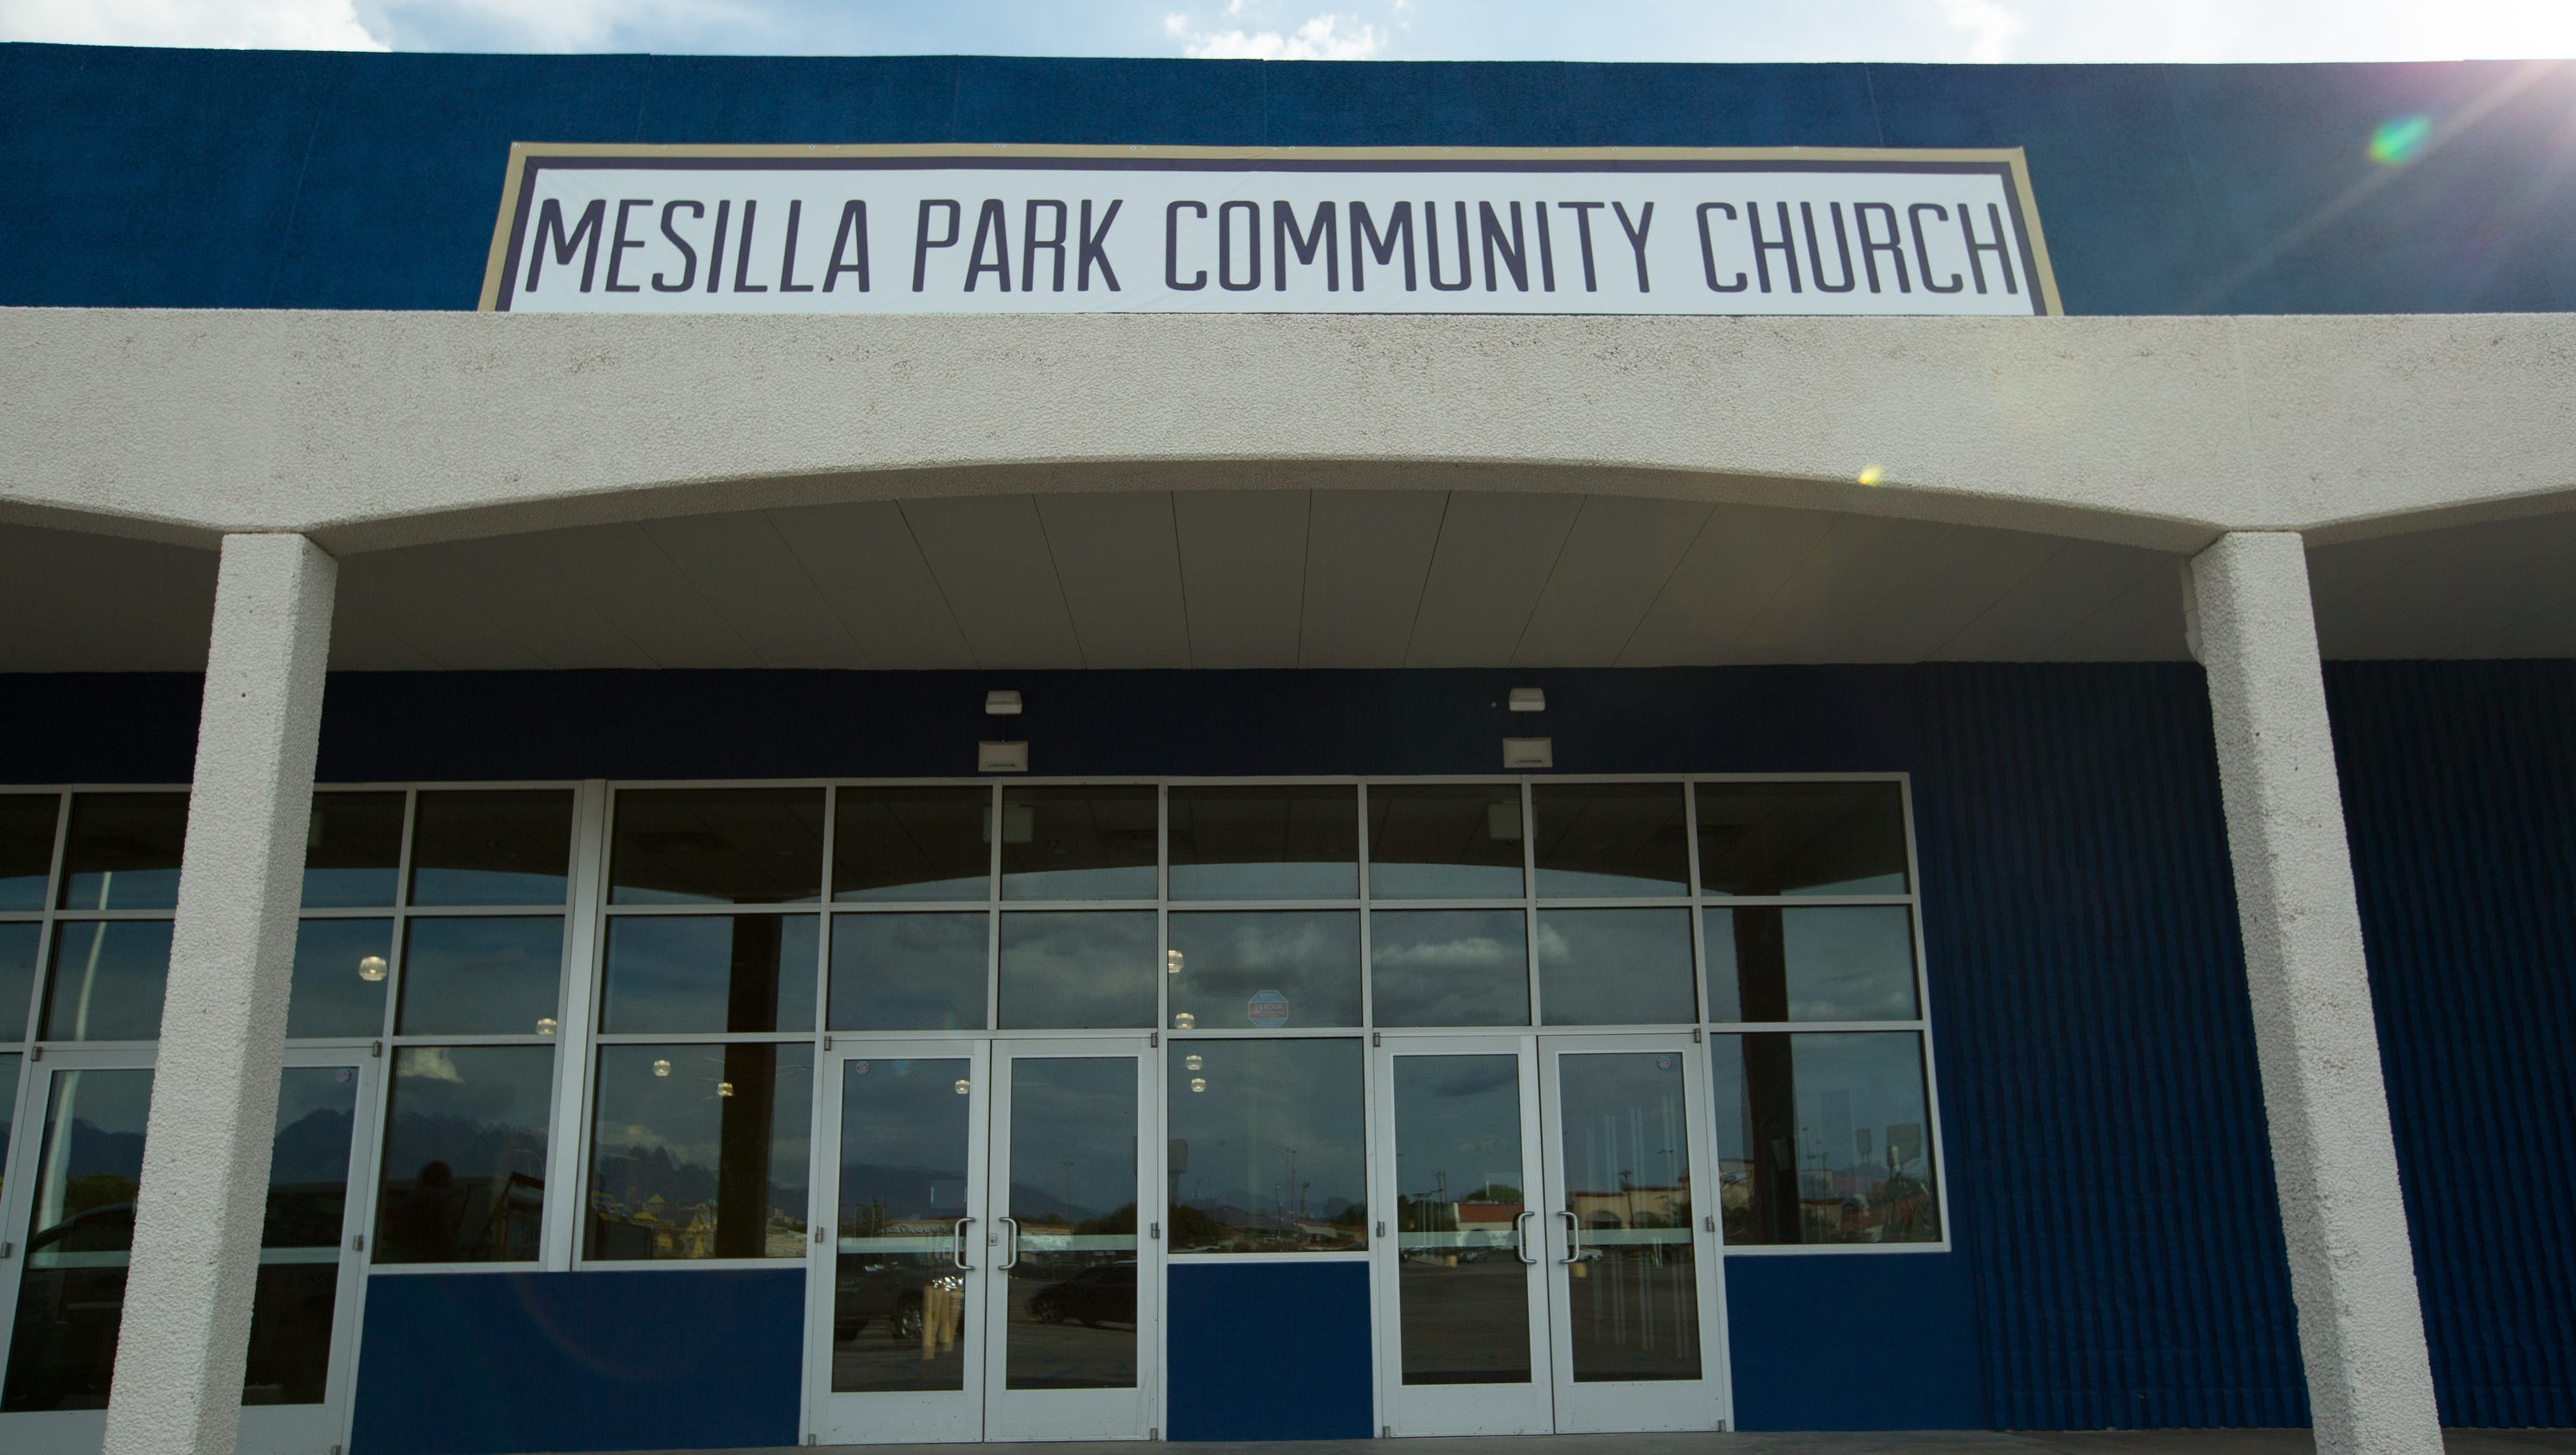 mesilla park chat You can also call or chat with us for immediate responses mesilla at carlson place 2049 cliffbrake way, georgetown magnolia park will be on the right.